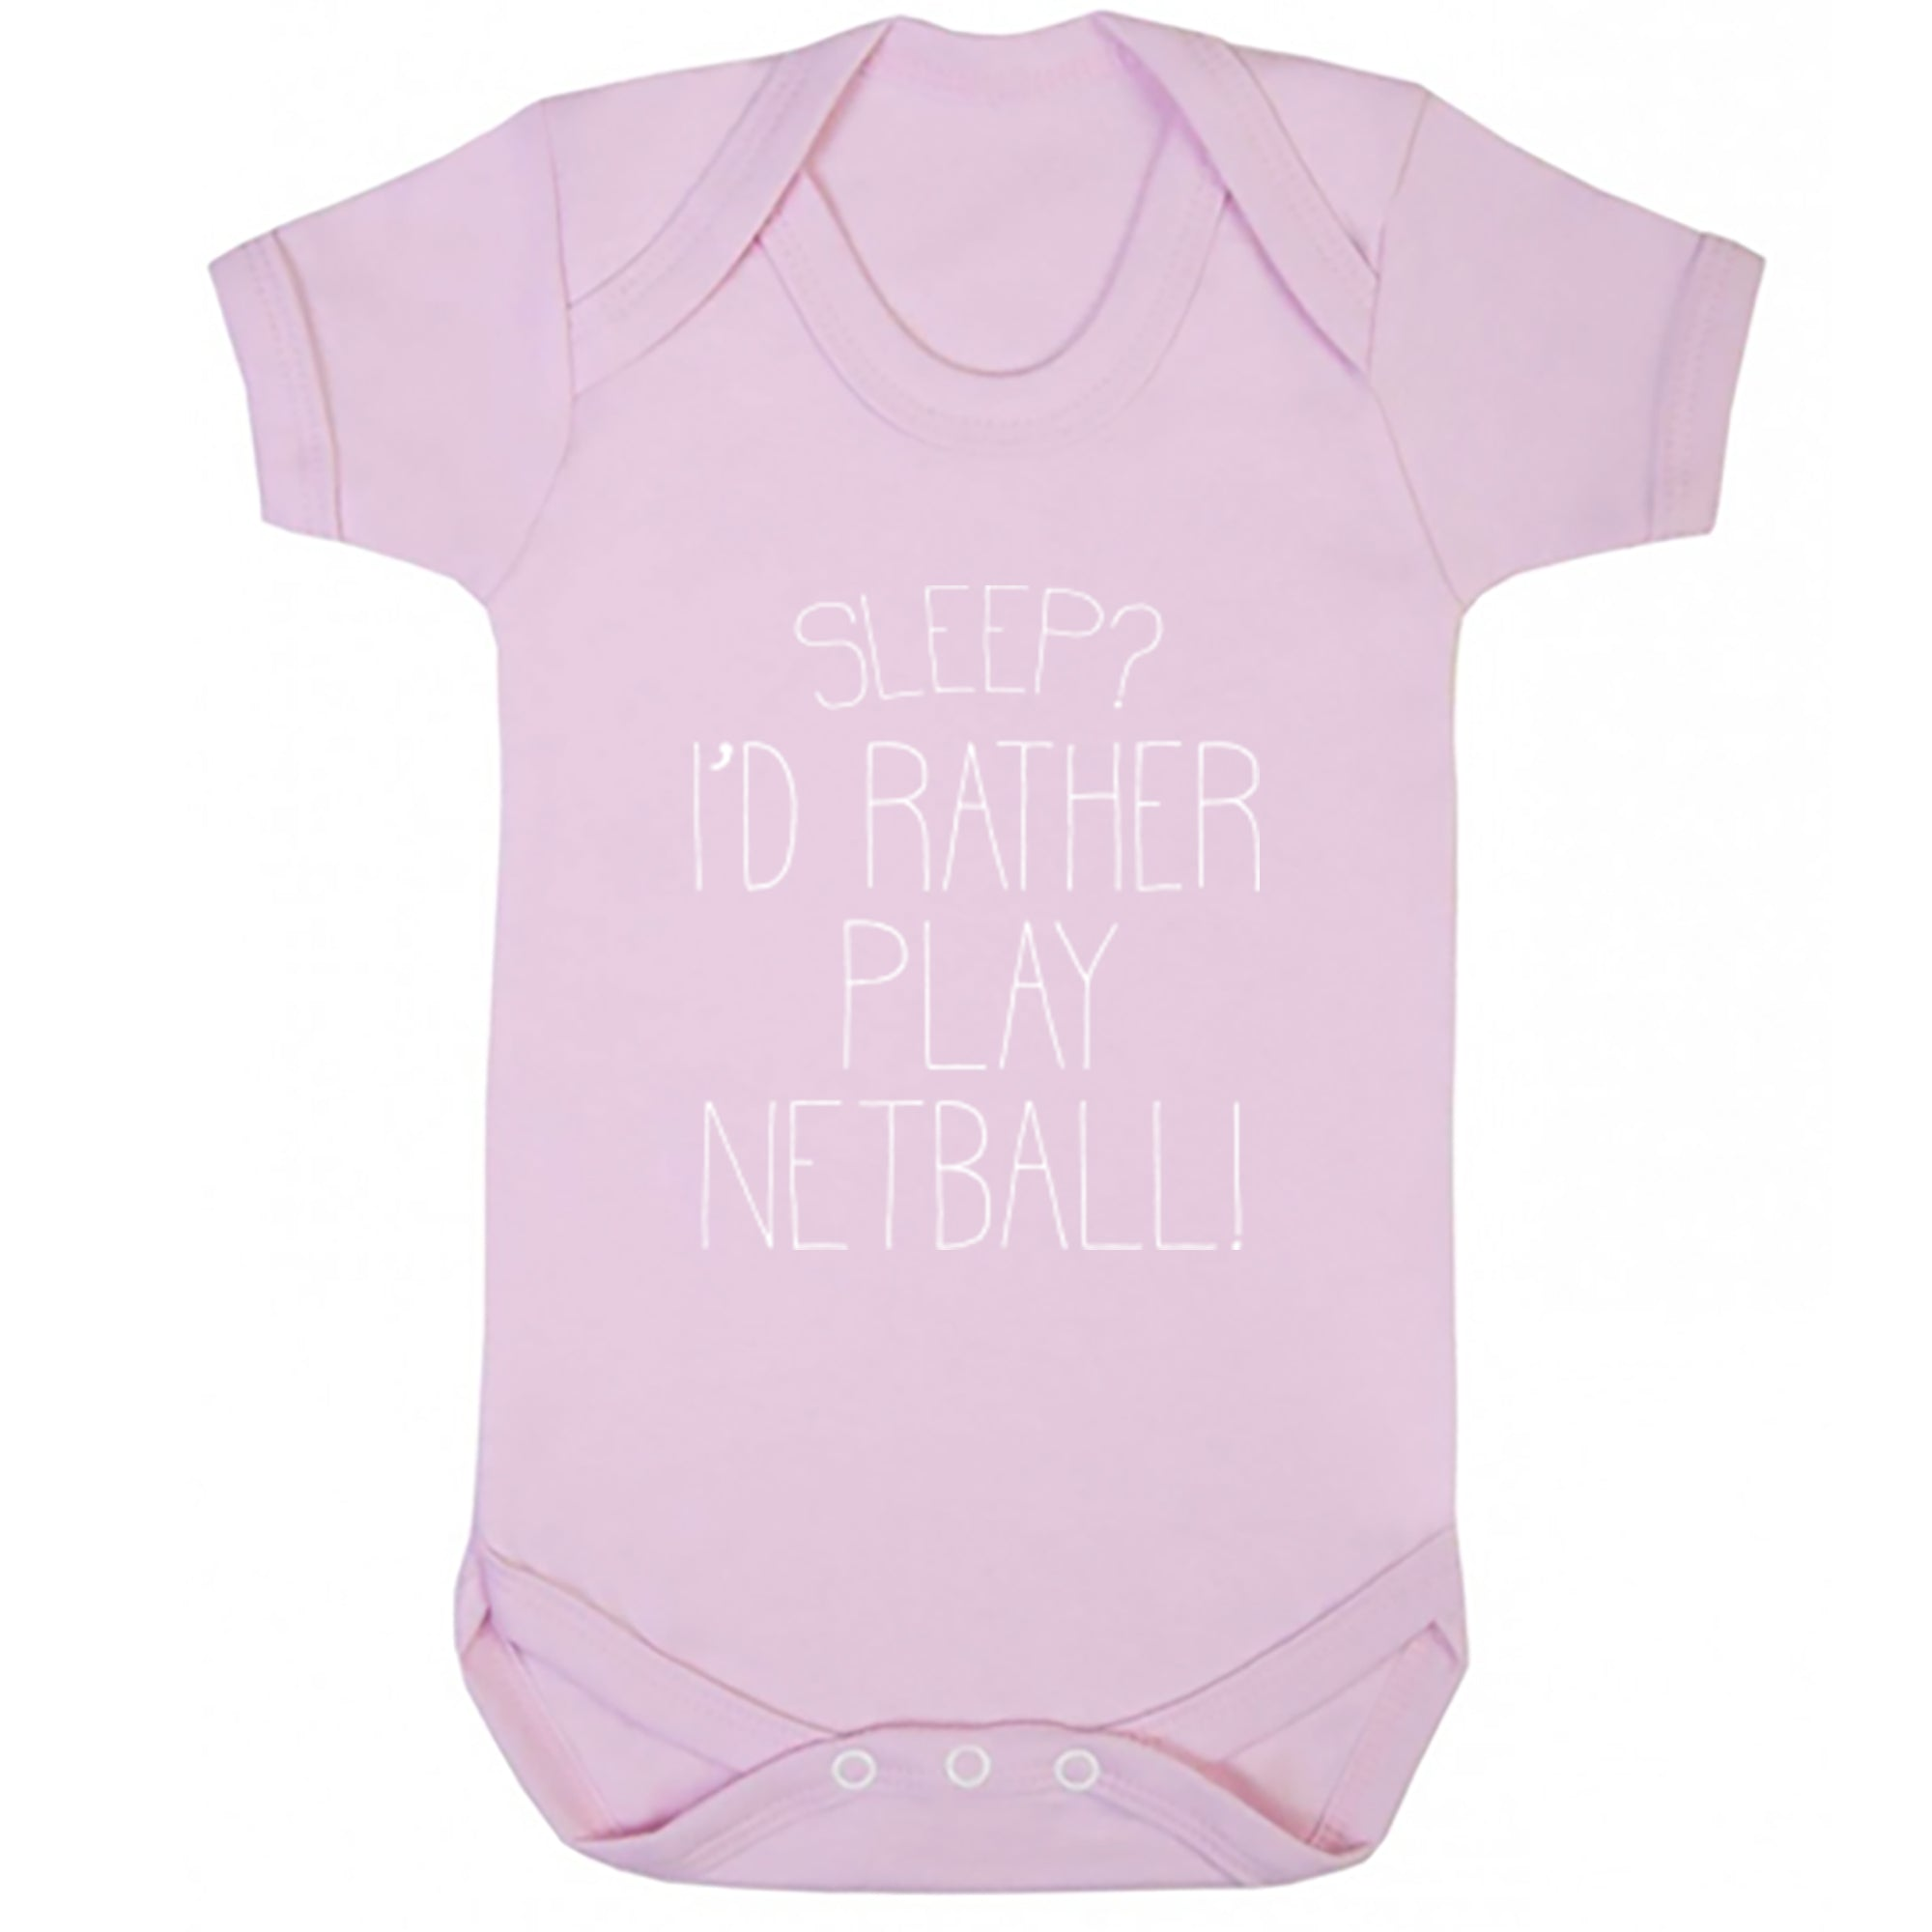 Sleep? I'd Rather Play Netball! Baby Vest S0474 - Illustrated Identity Ltd.